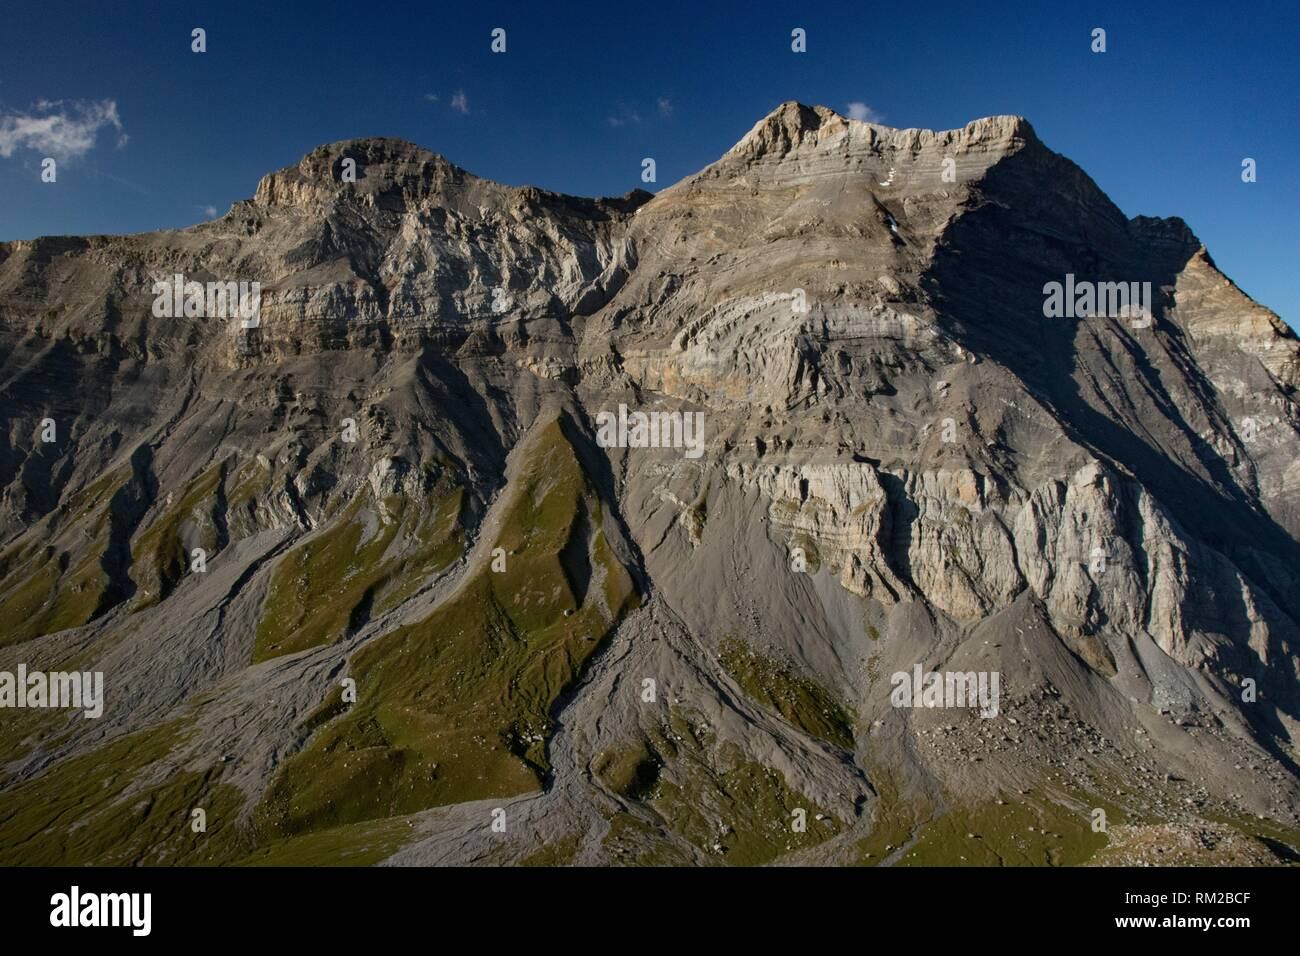 View taken from the south in the Bernese Alps. Switzerland. - Stock Image